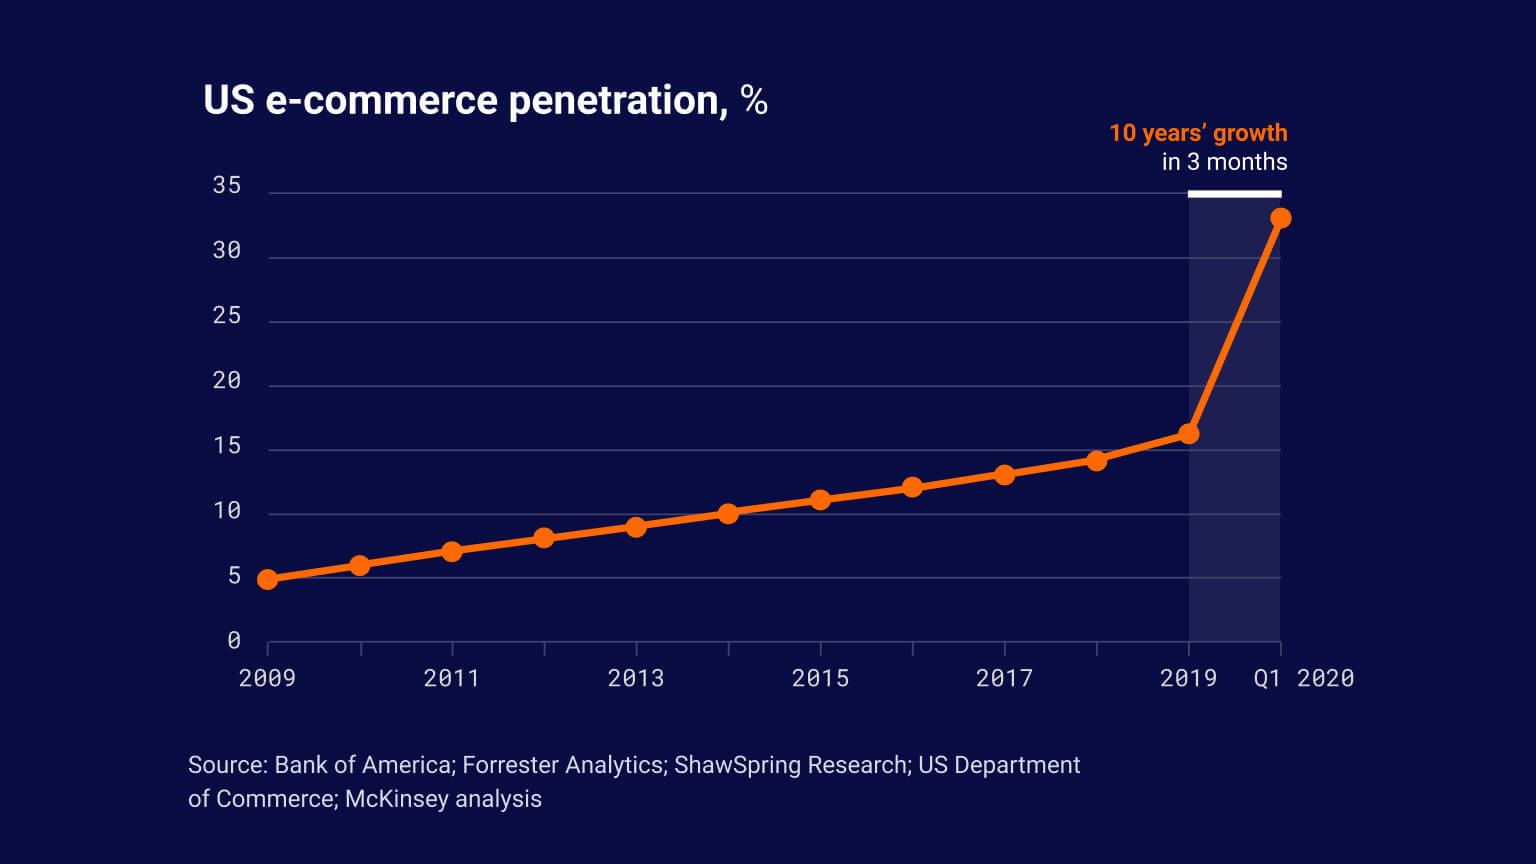 Graph showing 10 years' growth in 3 months for US e-Commerce